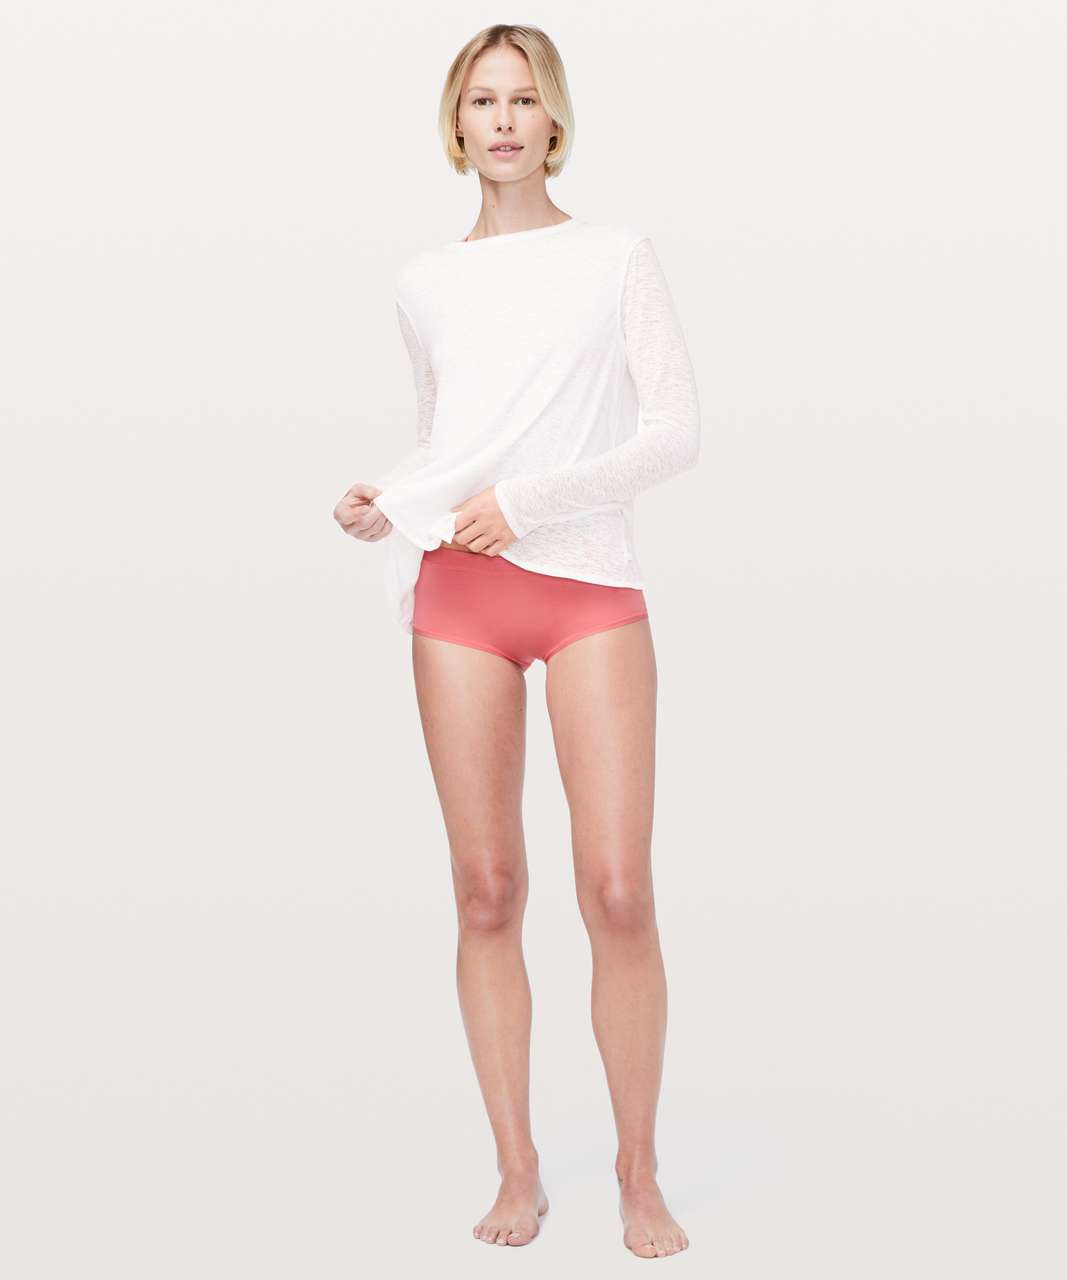 Lululemon Simply There Boyshort - Blush Coral